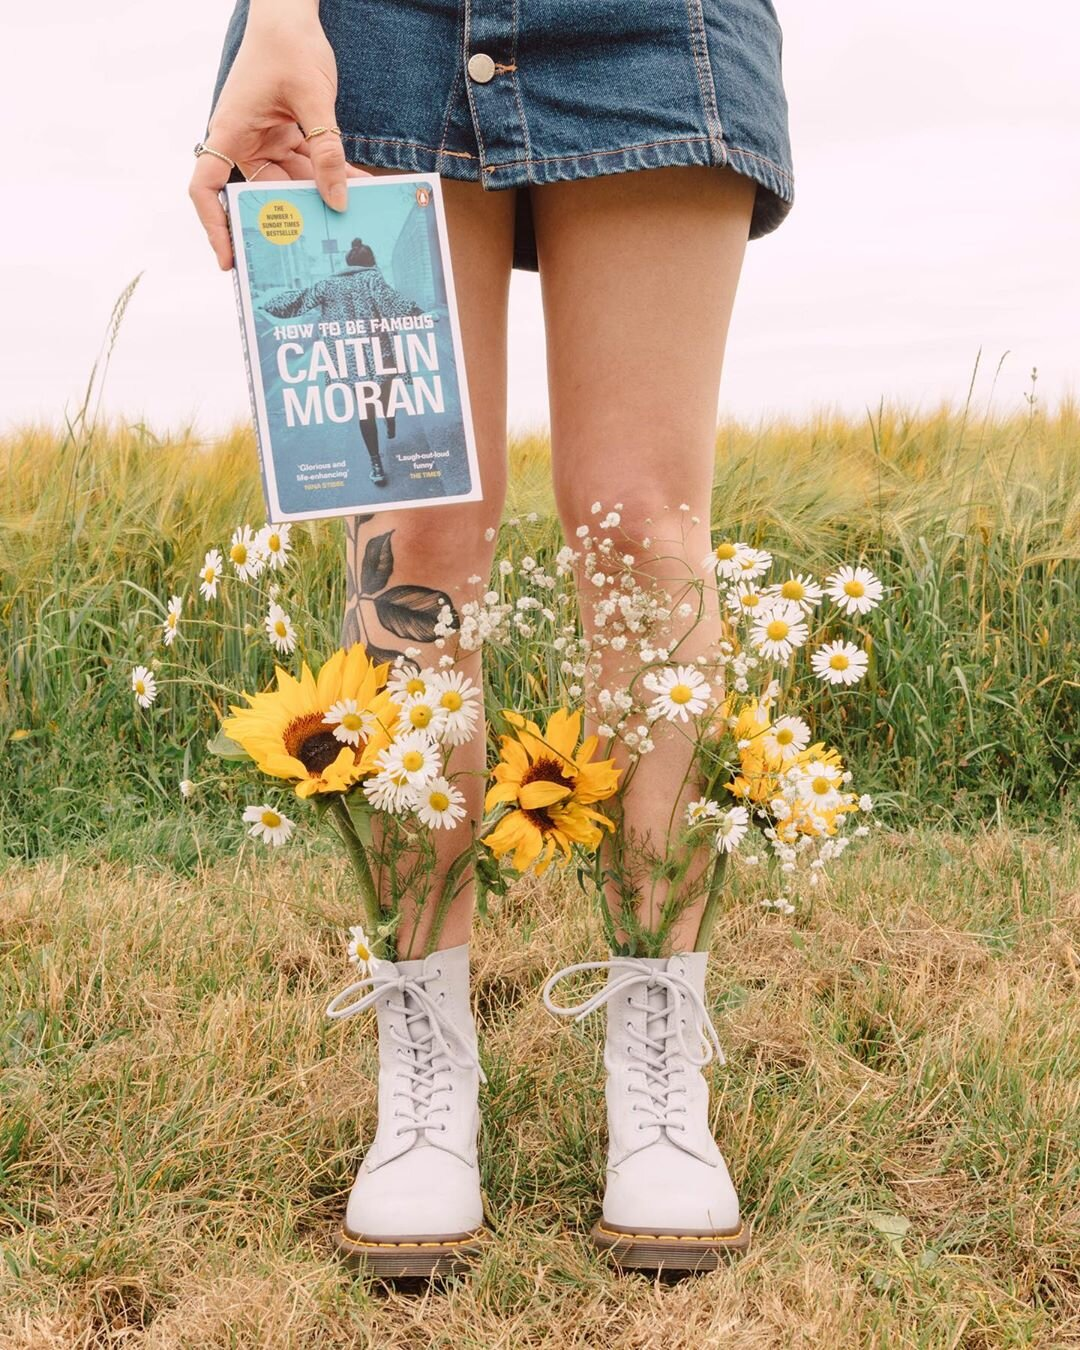 Your boots can become a handy vase. Source:  @frombeewithlove